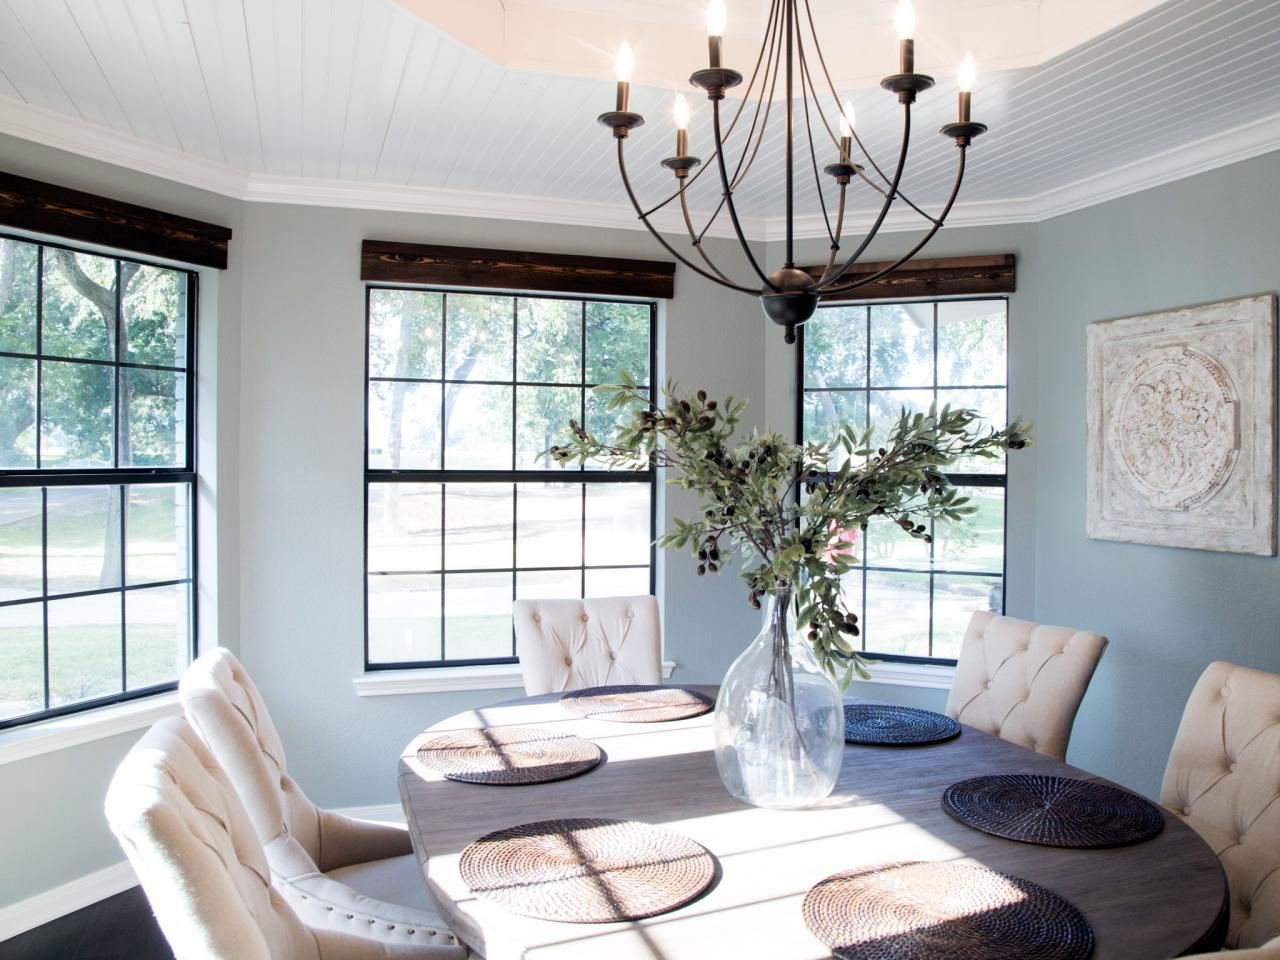 Fixer upper kitchen windows - Find This Pin And More On Fixer Upper